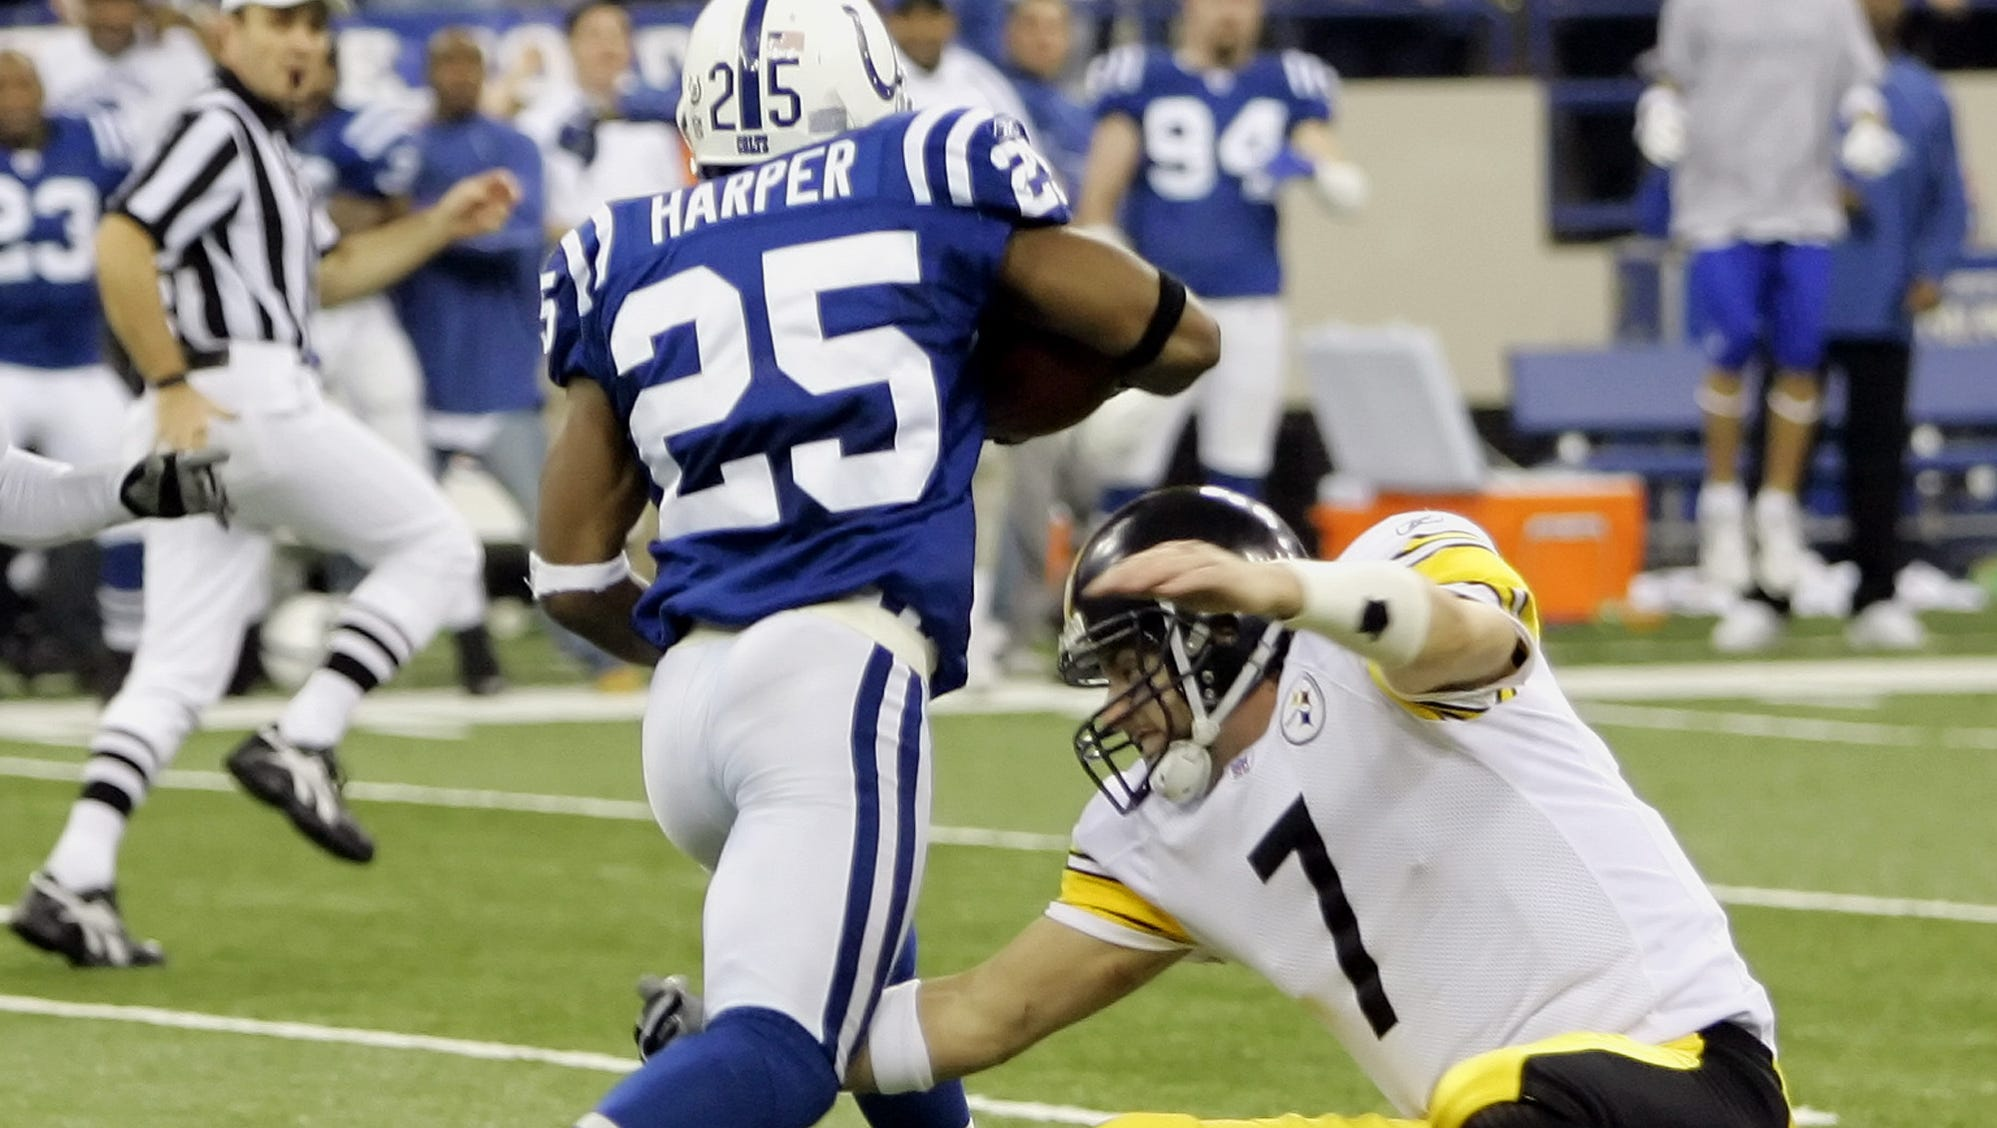 The play that cost the Colts a Super Bowl